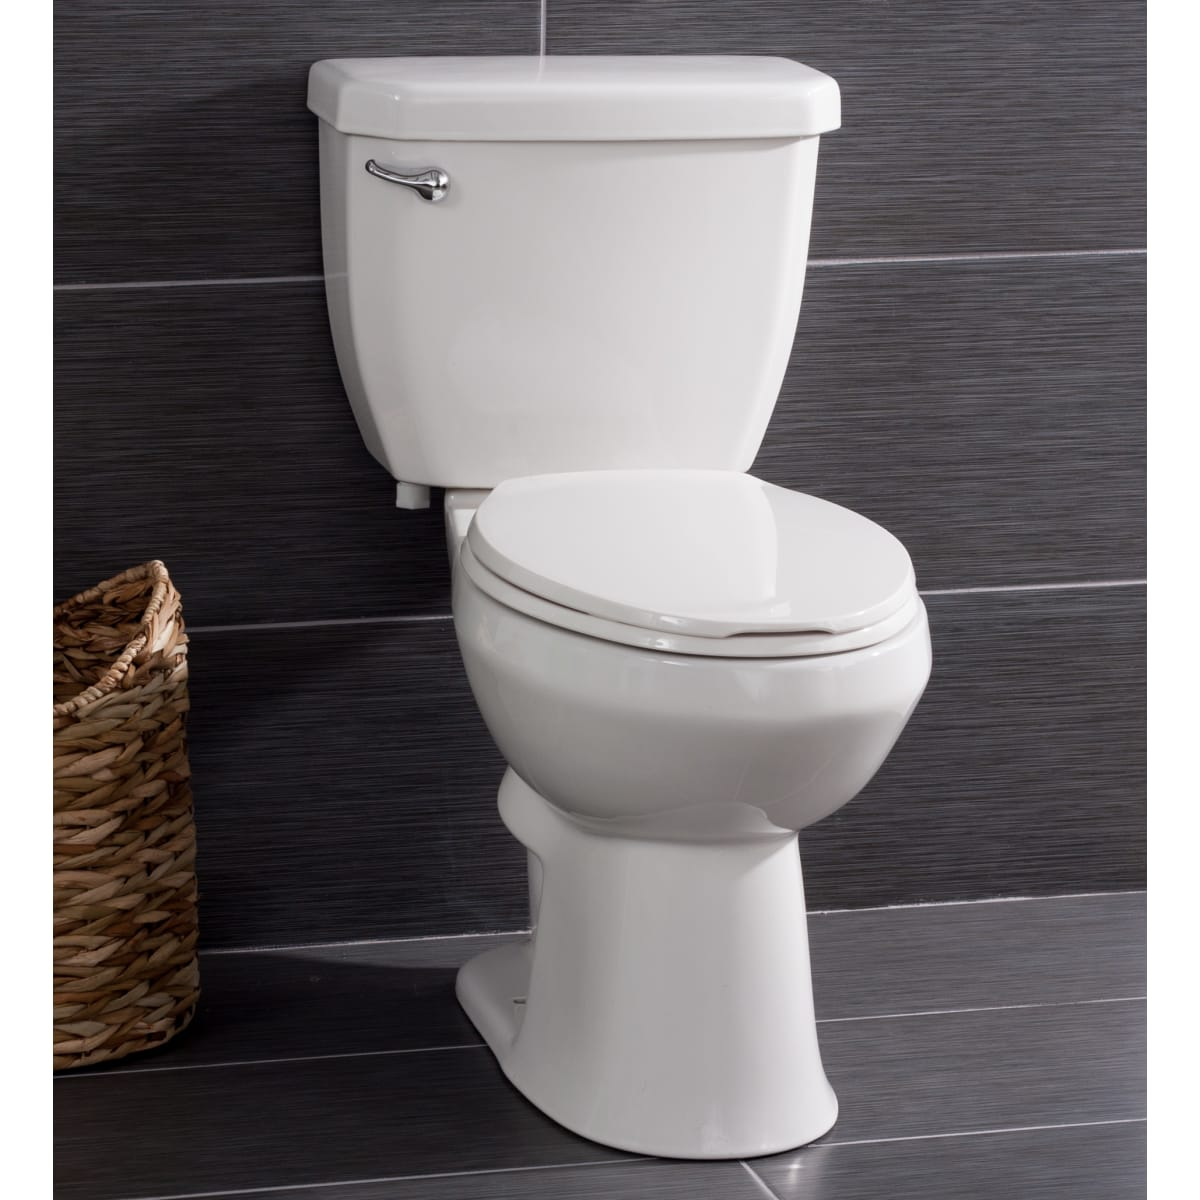 Miseno High-Efficiency 2-Piece Elongated Chair-Height Toilet with Seat (White)